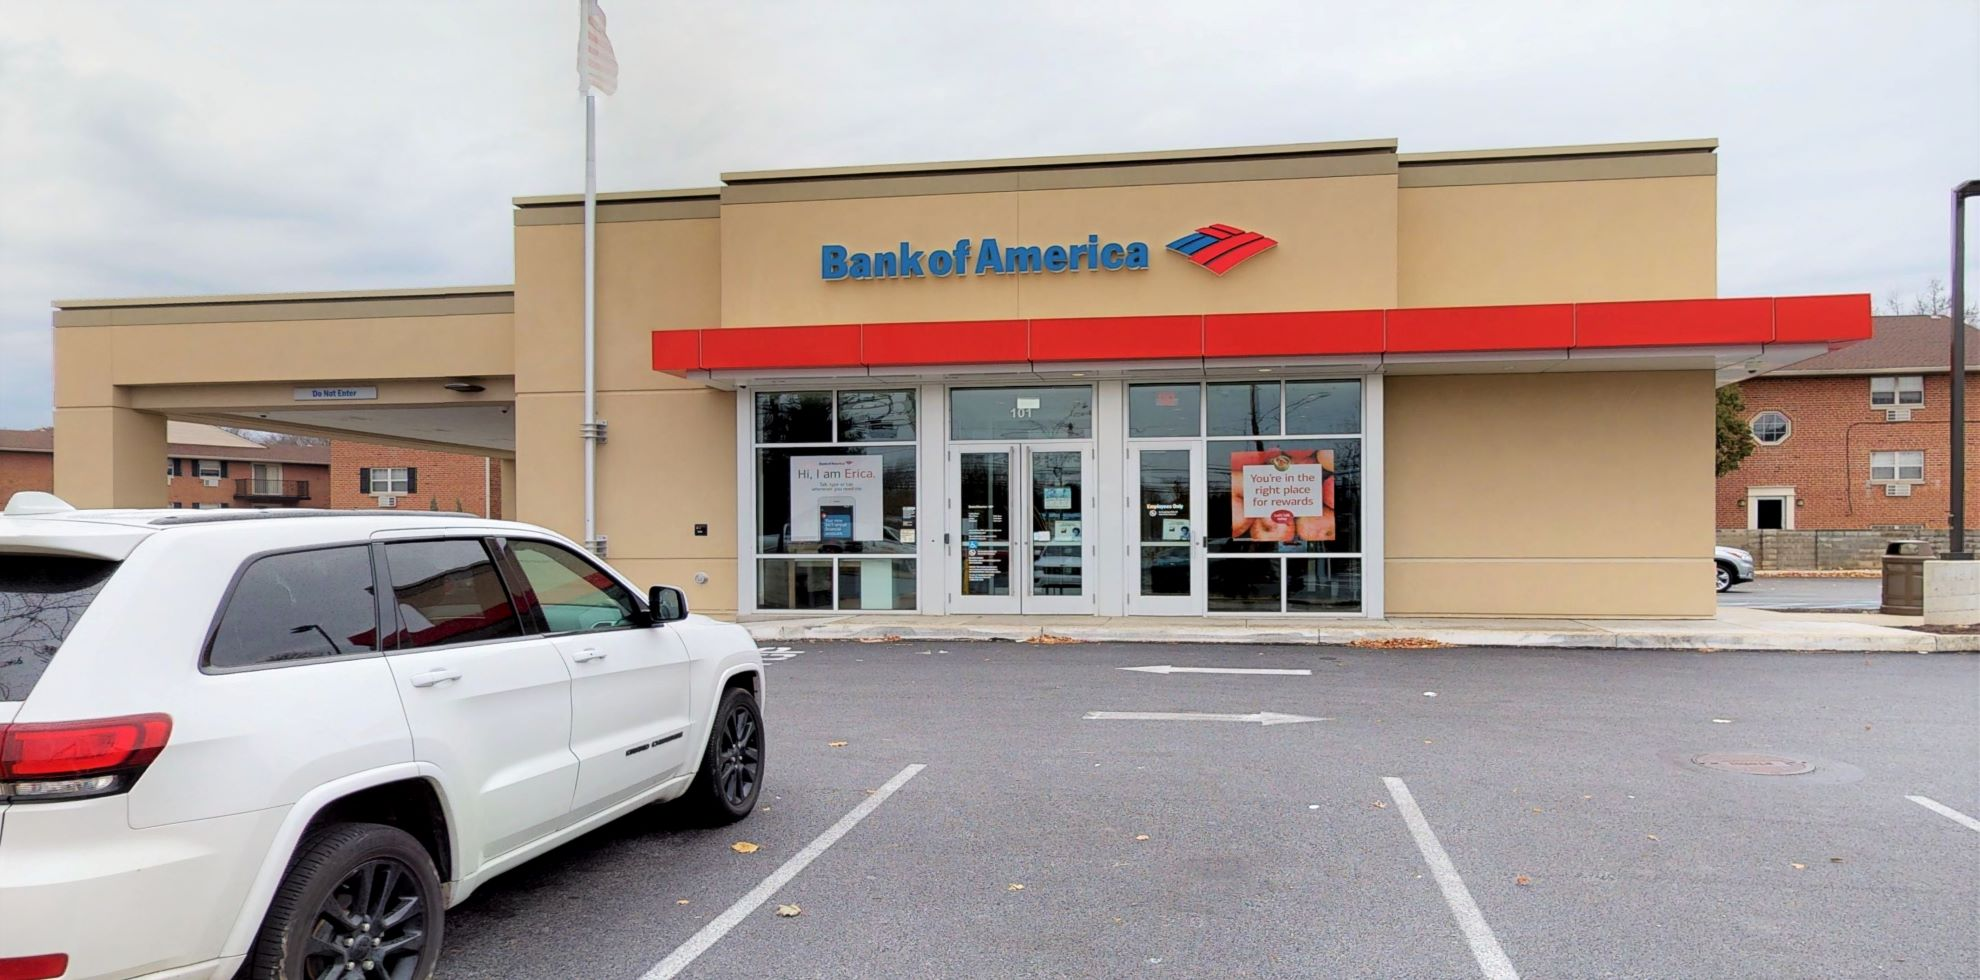 Bank of America financial center with drive-thru ATM   101 W MacDade Blvd, Folsom, PA 19033